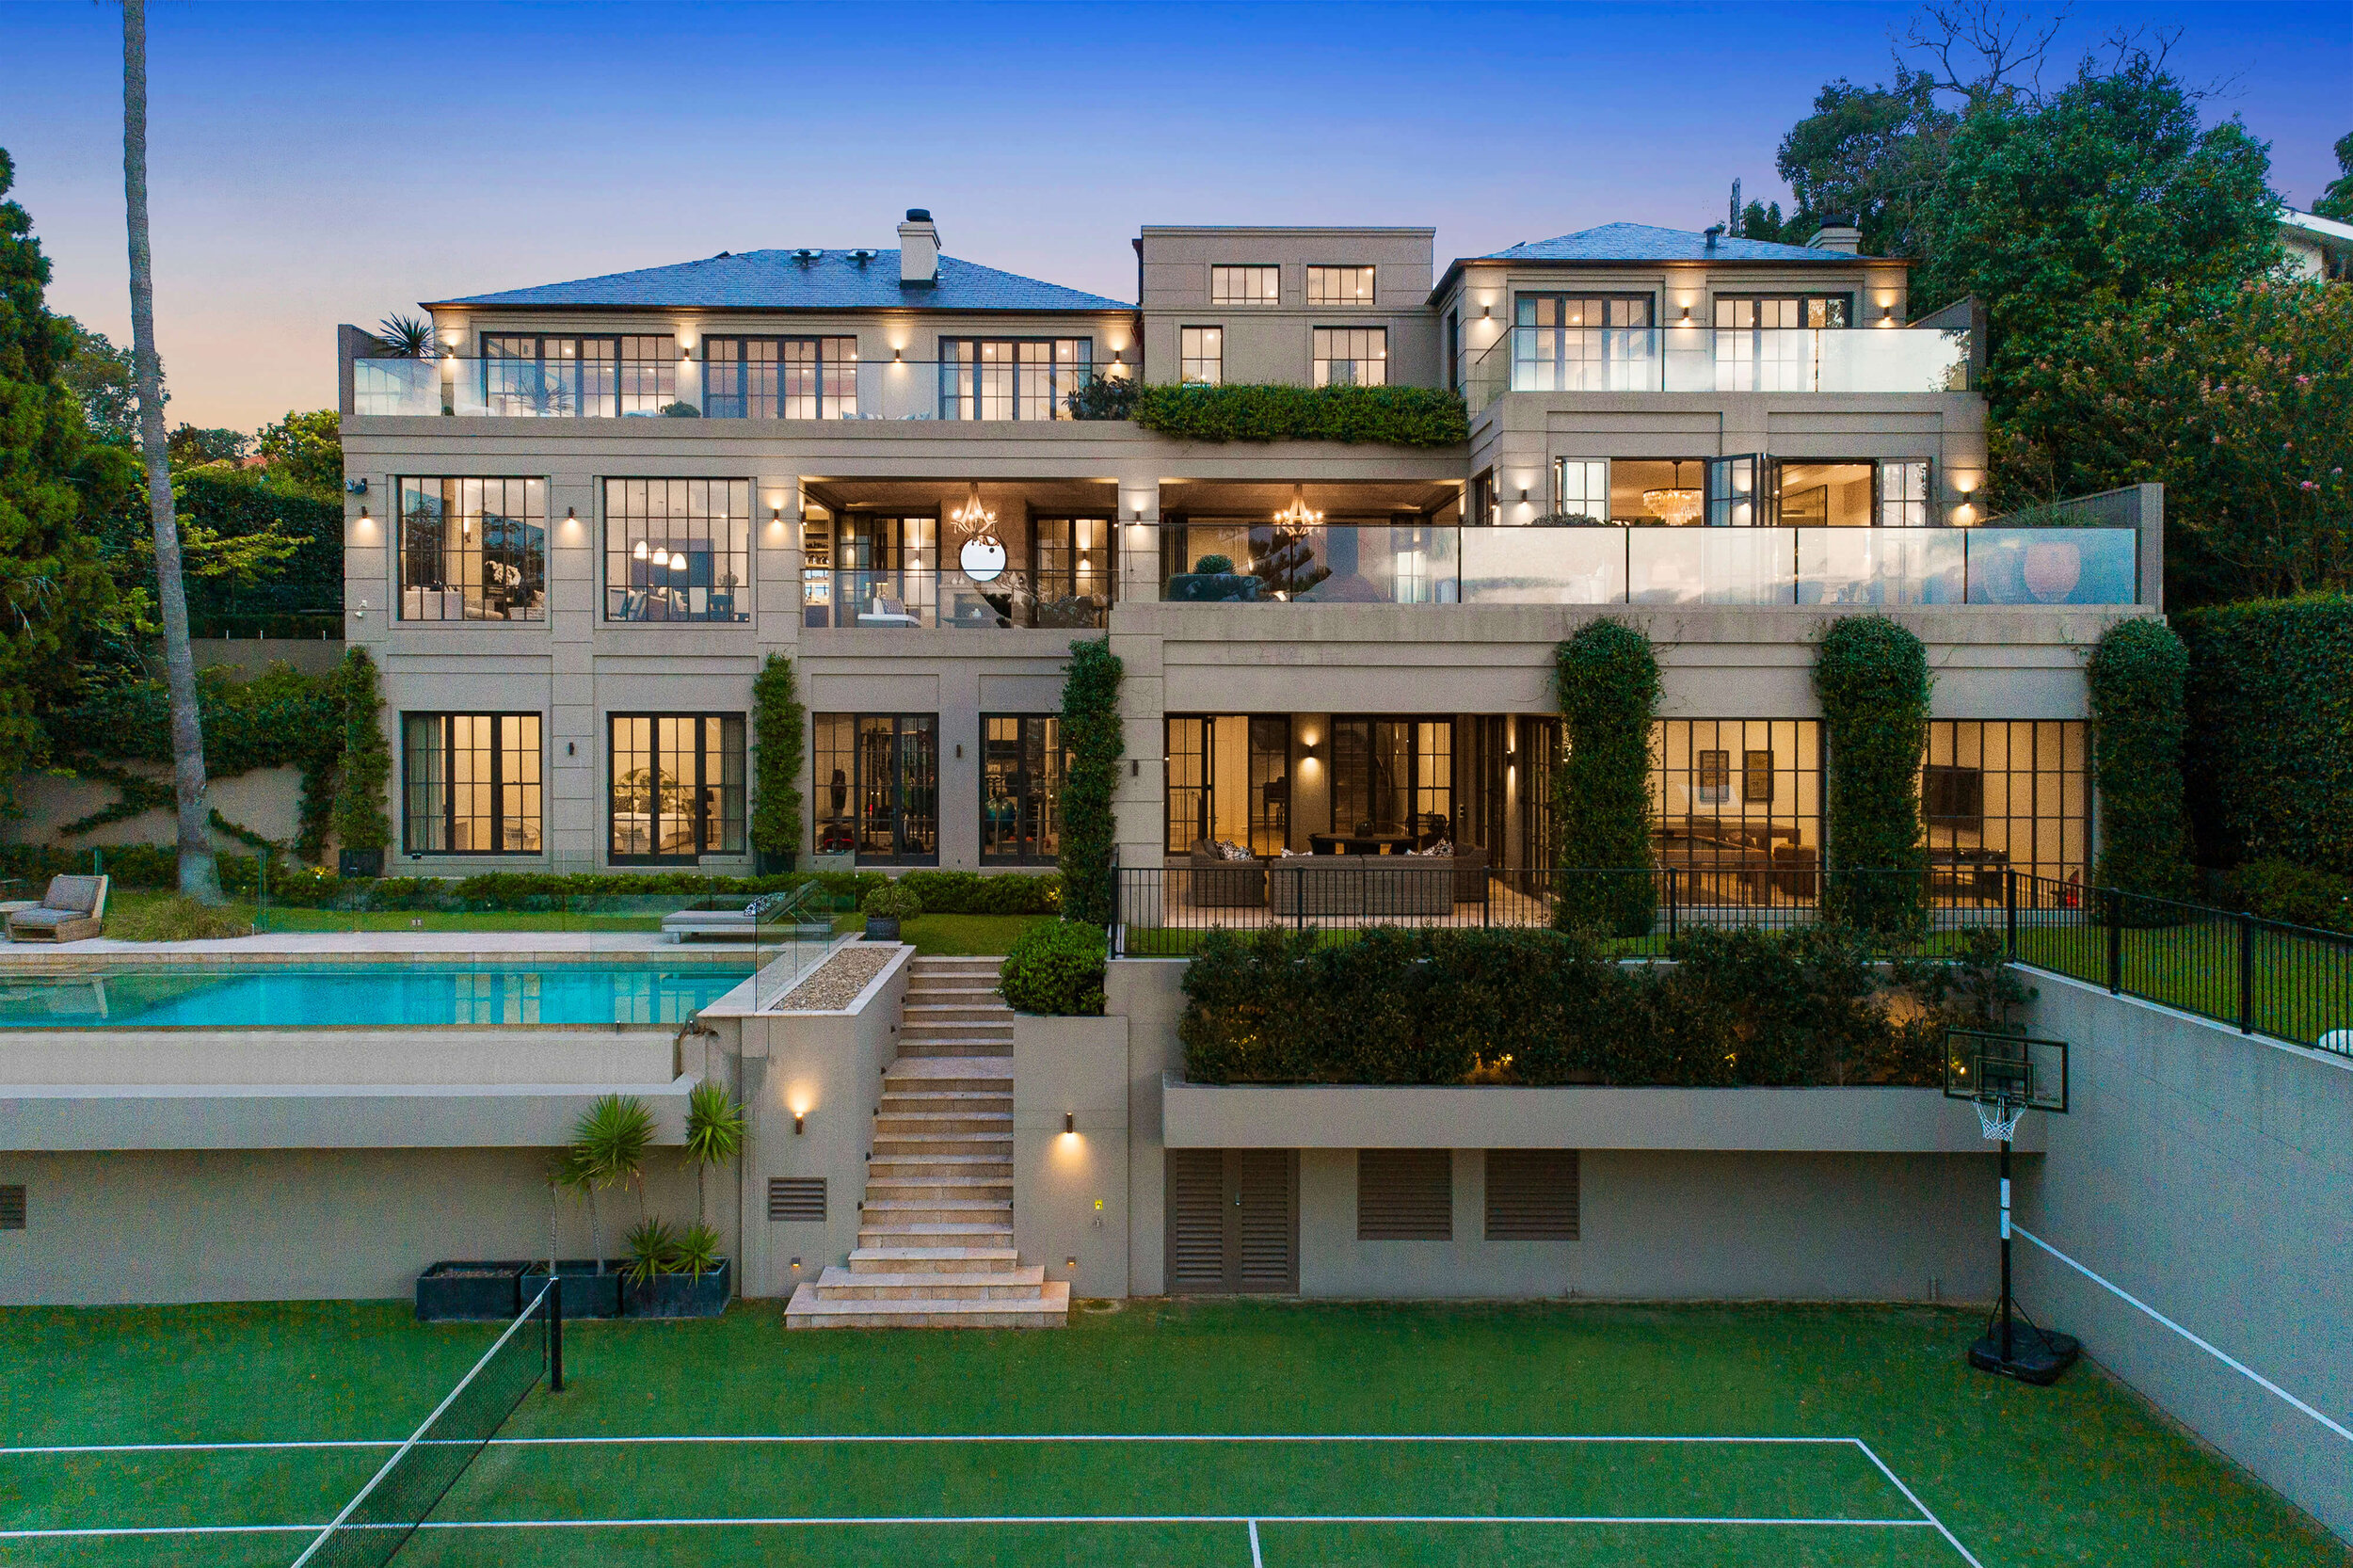 OMG: This is the mind blowing Mosman mansion with an eye-watering price tag of $25m!